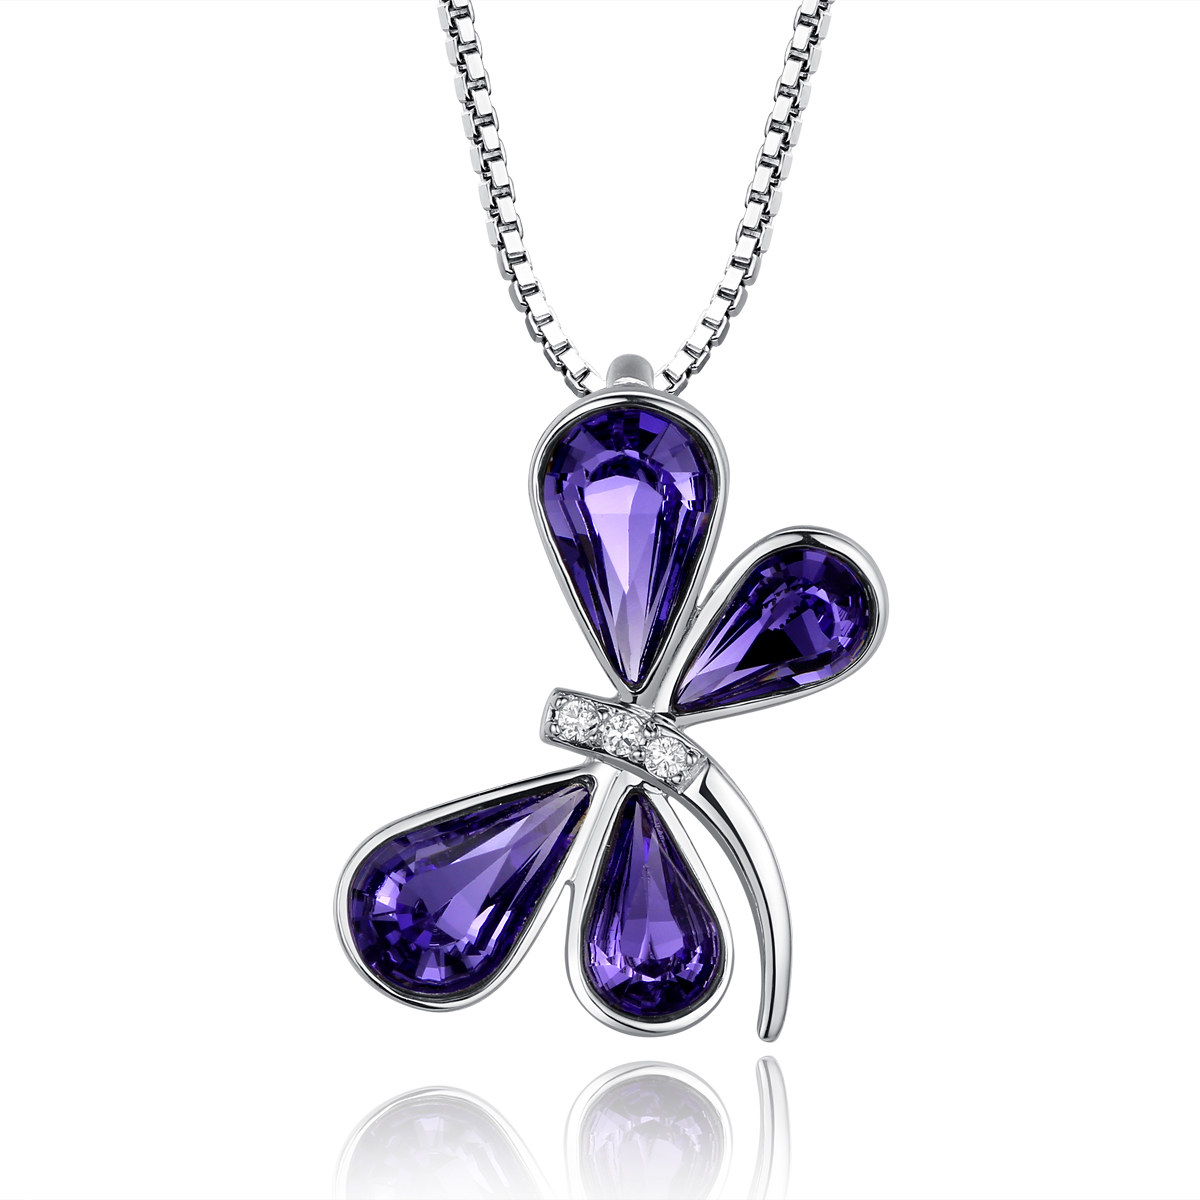 Genuine 100 925 sterling silver butterfly swarovski crystal pendant genuine 100 925 sterling silver butterfly swarovski crystal pendant necklace and 18 inch silver chain aloadofball Image collections